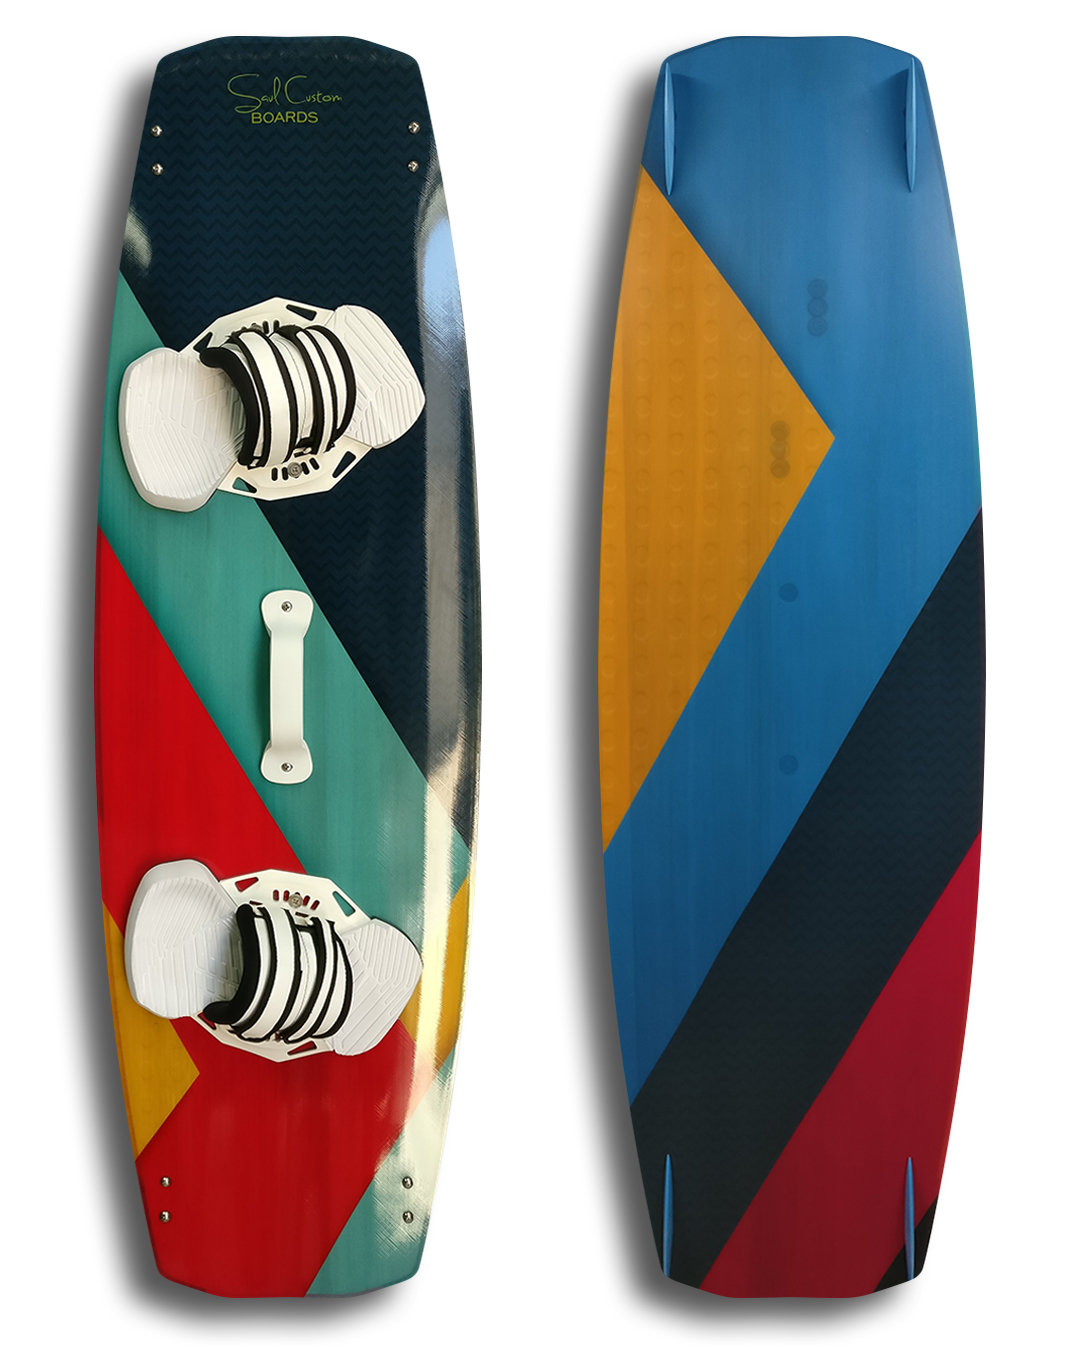 Standard 2.0 kiteboard - Vivid custom graphics - Wood core - Triaxial fiberglass construction 00016